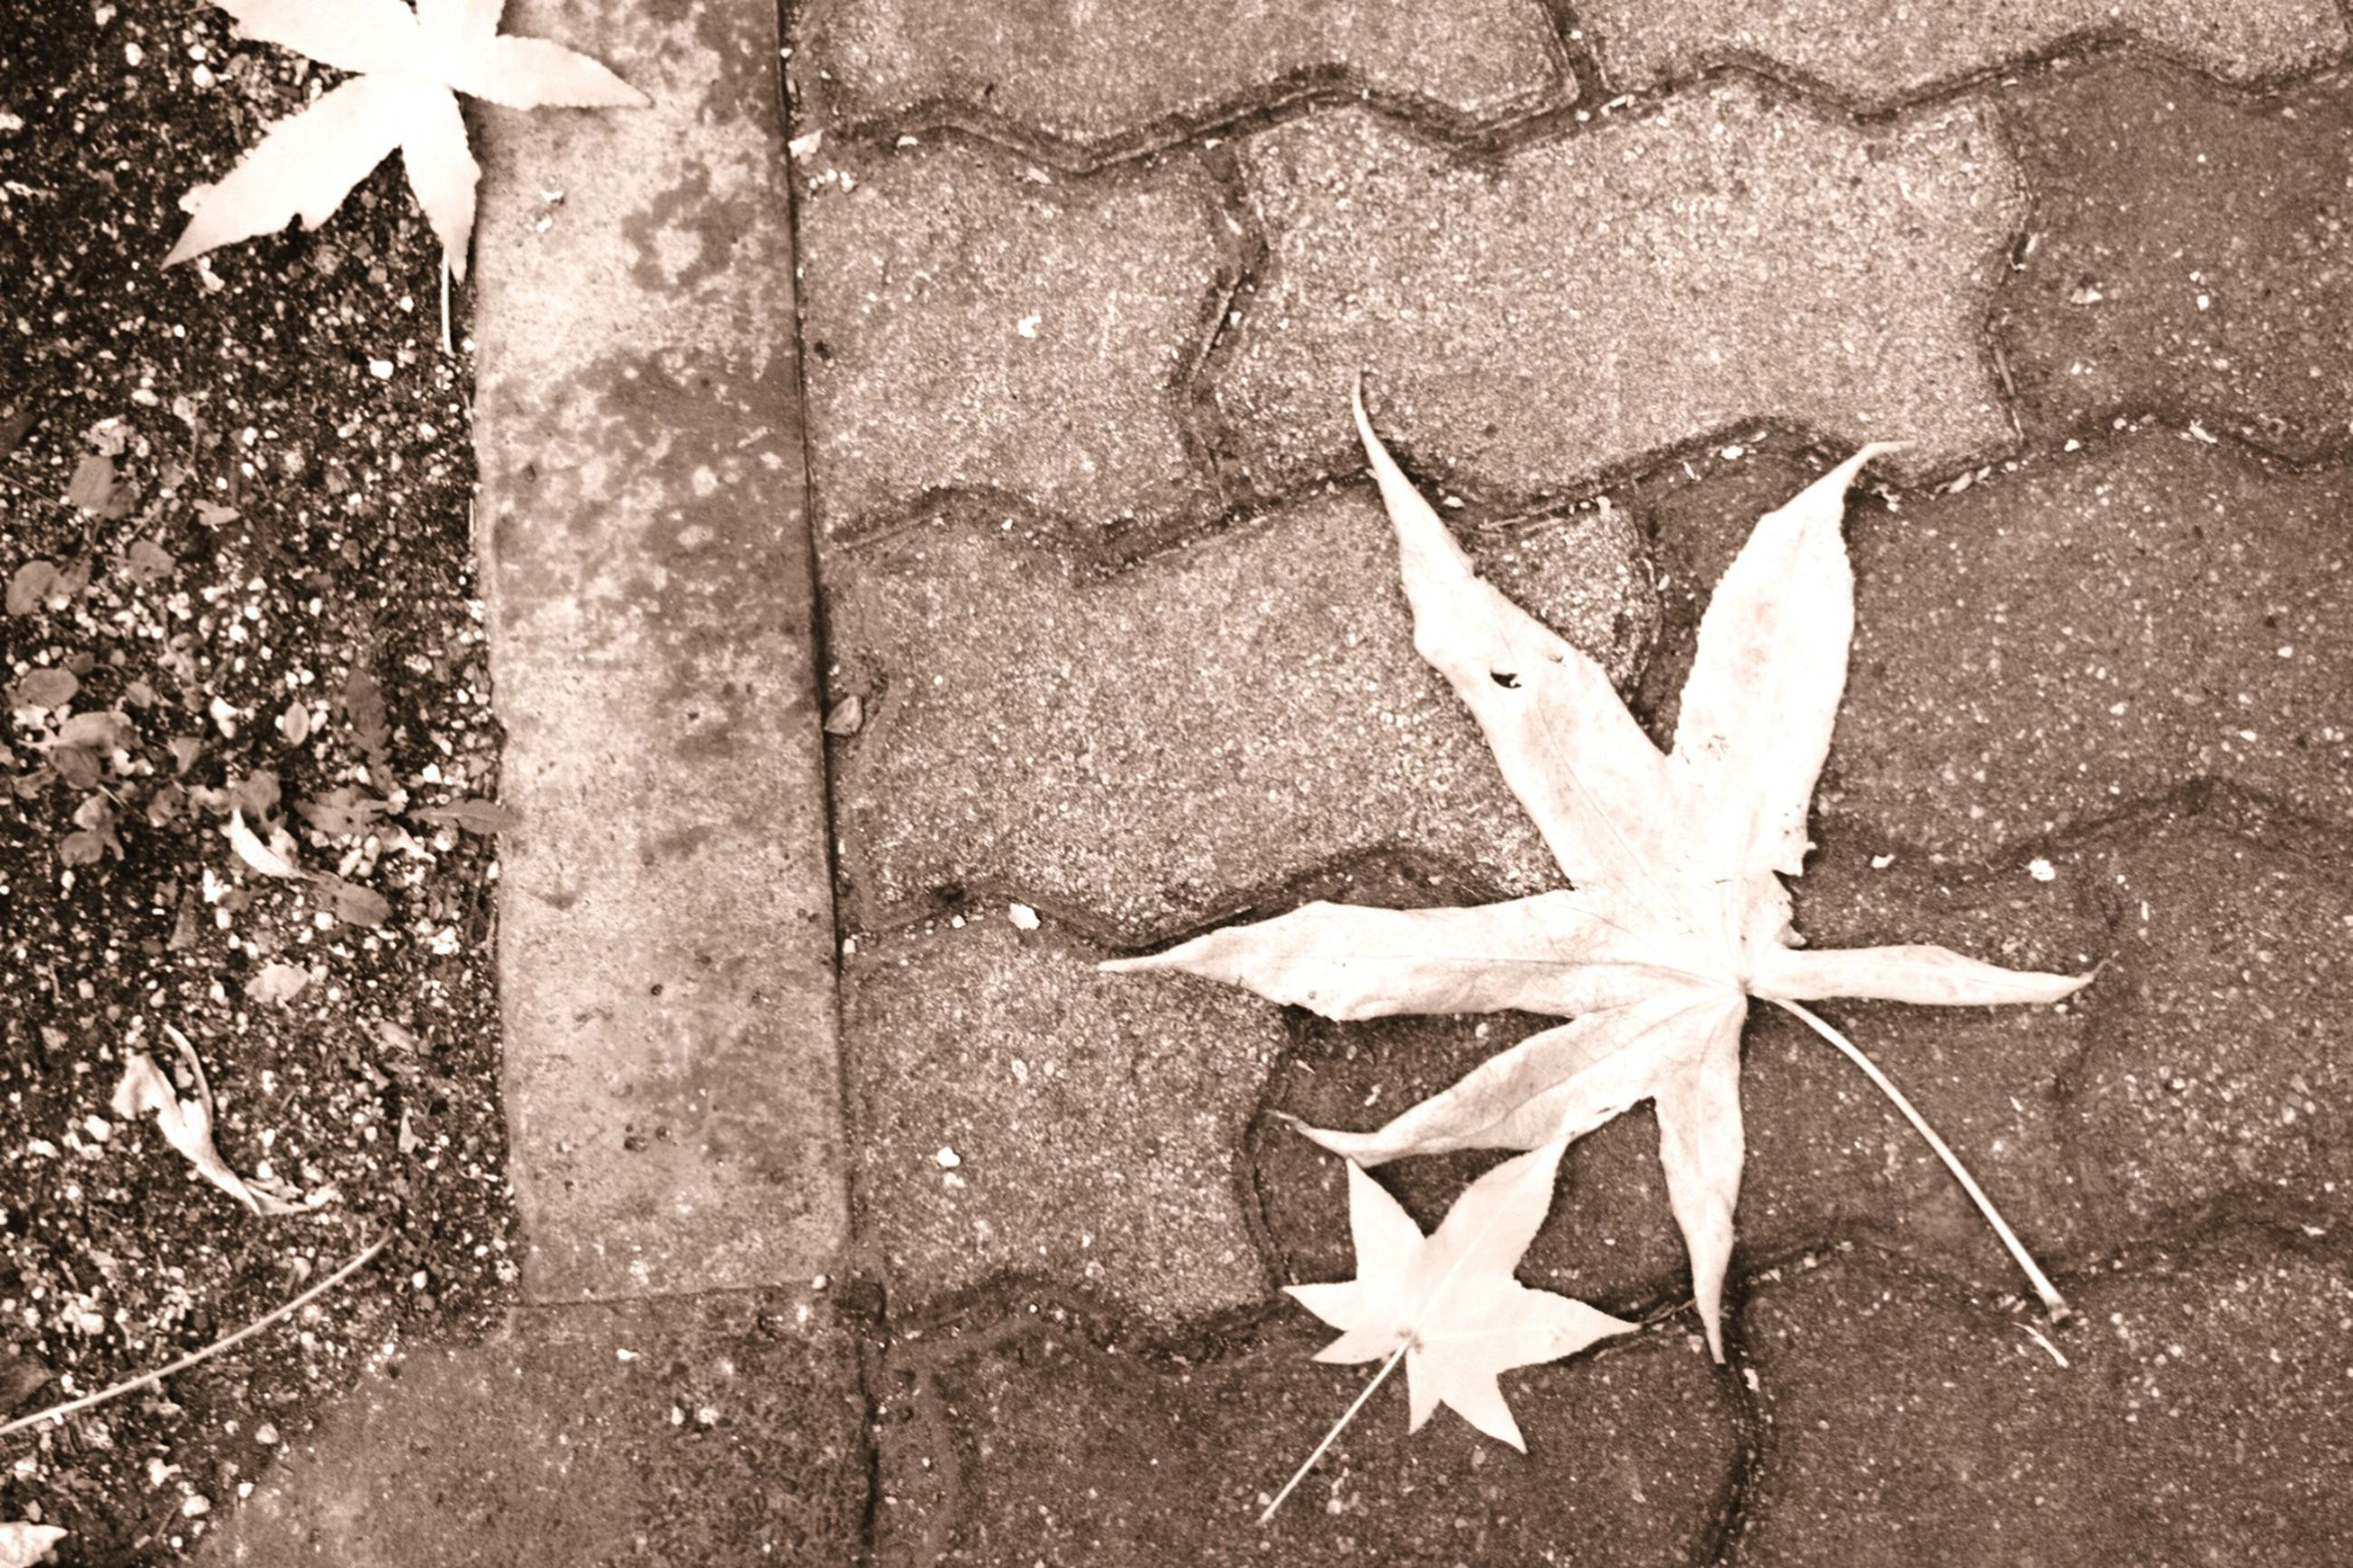 star shape, close-up, high angle view, creativity, art and craft, day, art, outdoors, no people, sunlight, maple leaf, white color, textured, shadow, leaf, nature, asphalt, paper, pattern, still life